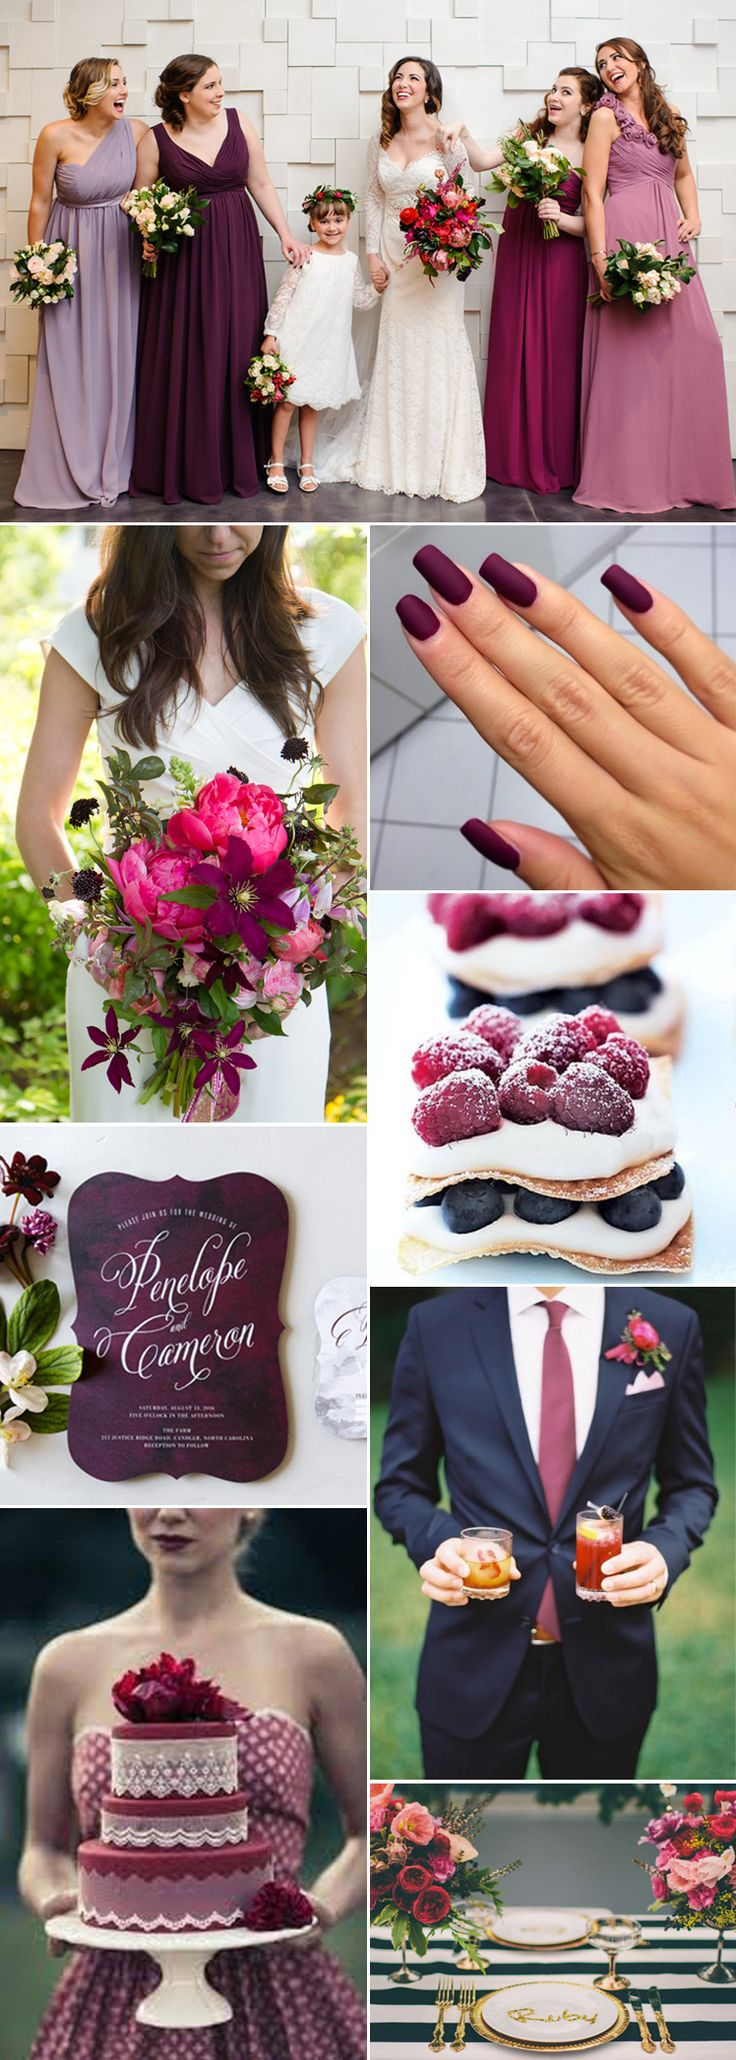 Stunning & Stylish Berry Wedding Inspiration